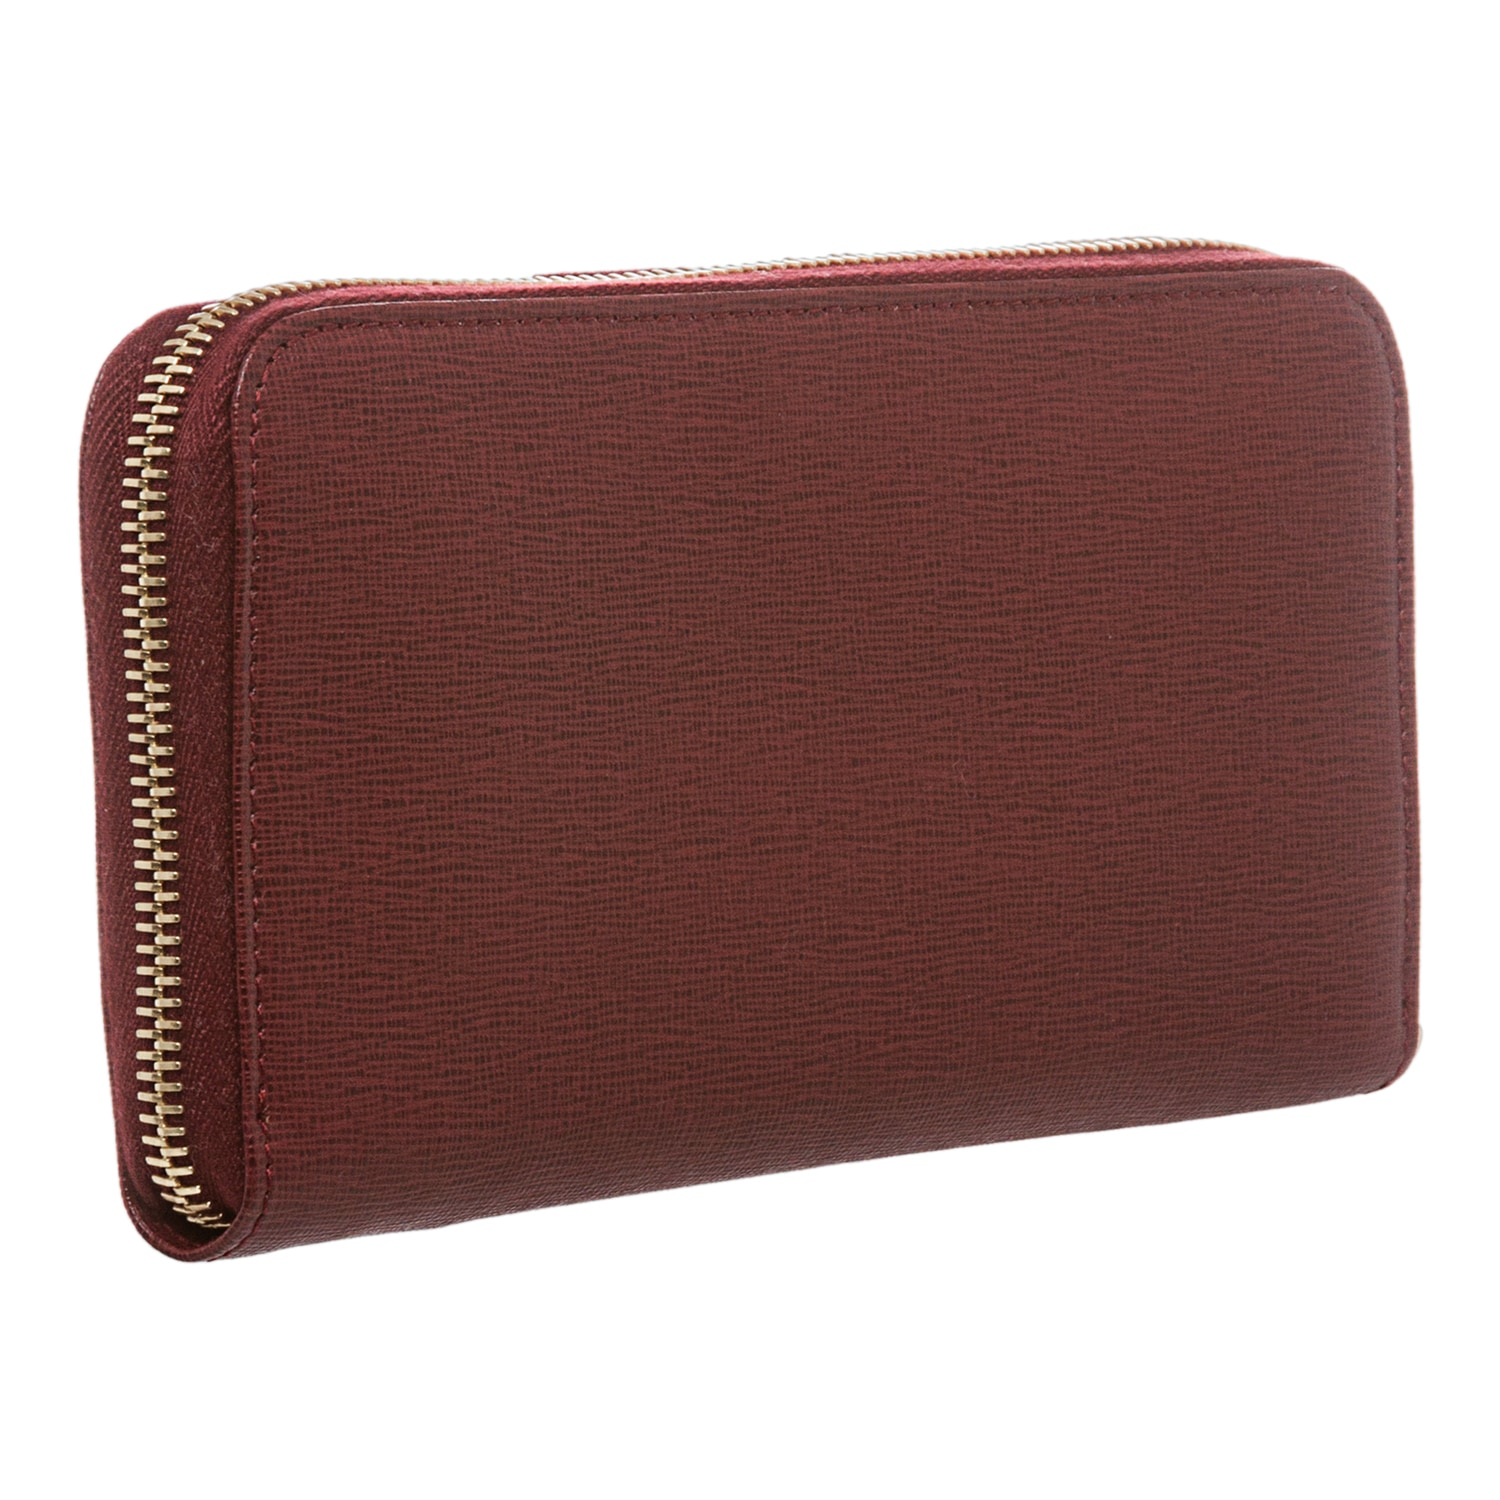 837aa21131 Shop Fendi Crayons Red Leather Zip-Around Wallet - Free Shipping Today -  Overstock - 8577838